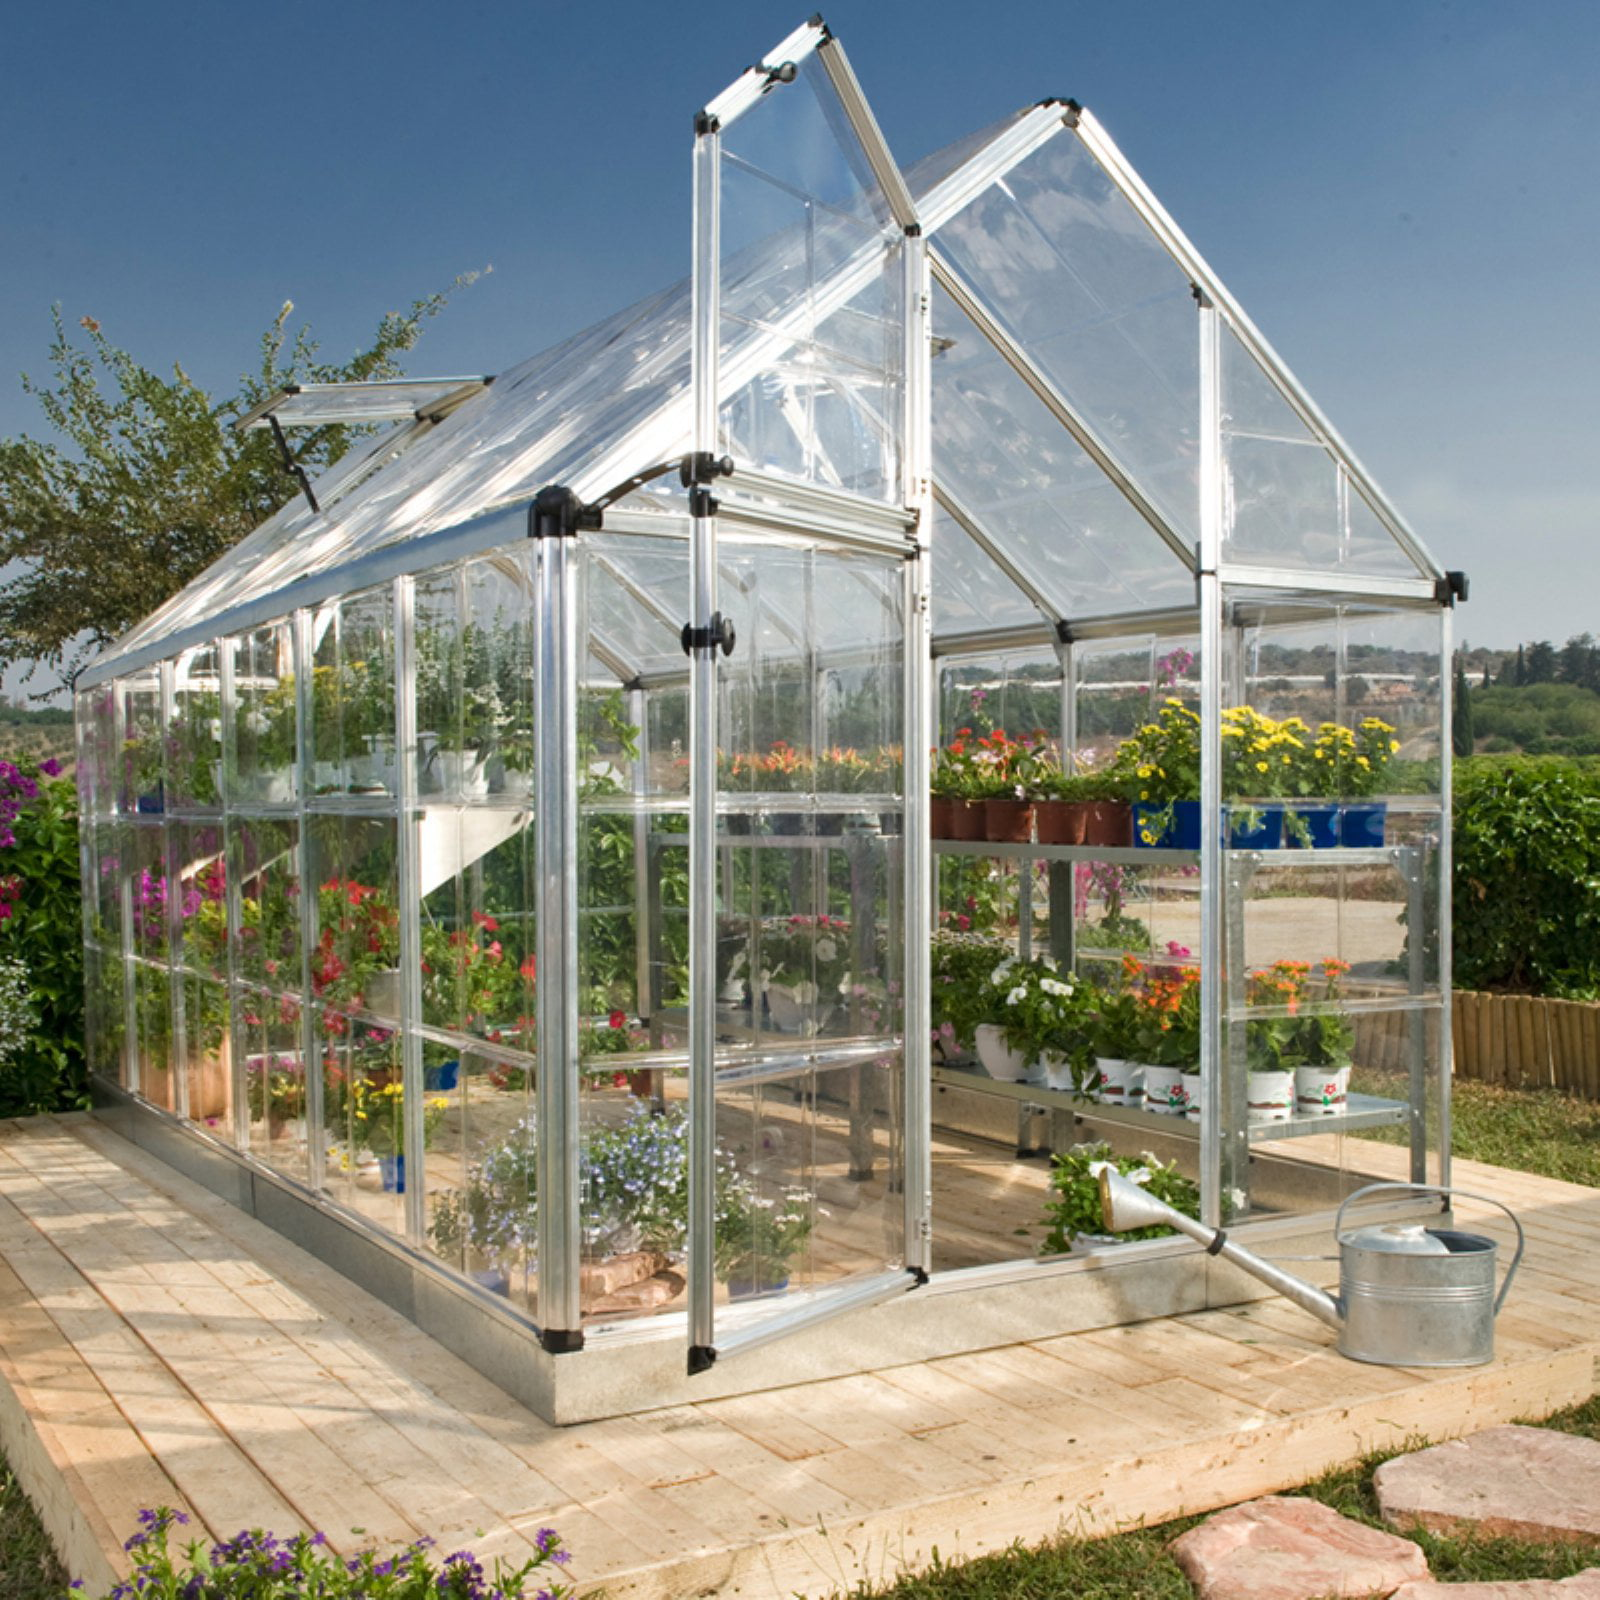 Snap and Grow Greenhouse, 6' x 16', Silver by Palram